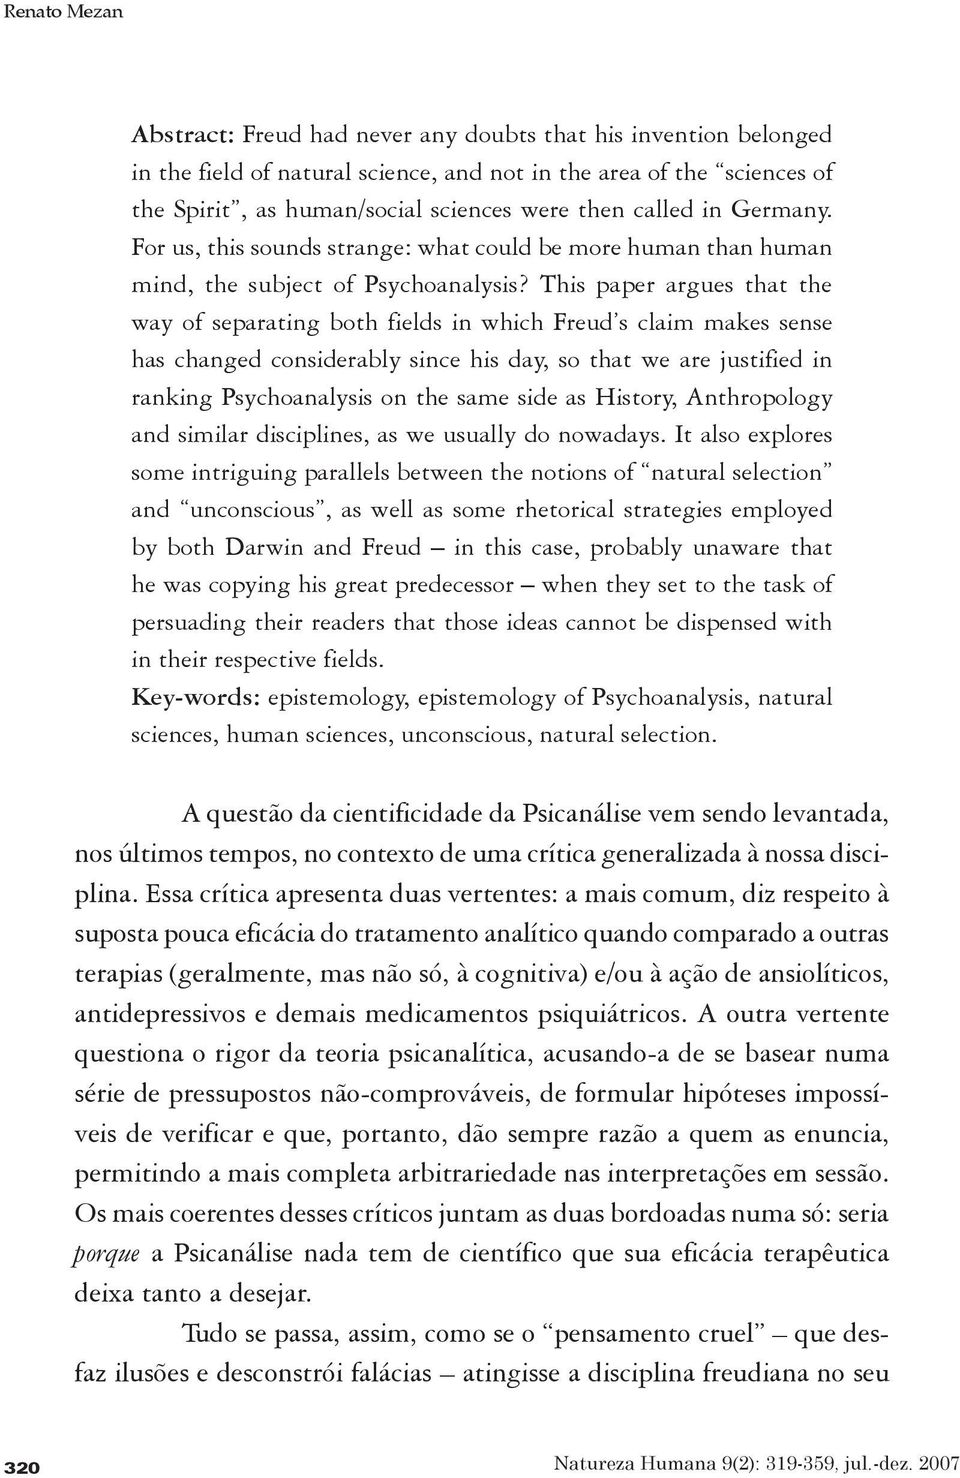 This paper argues that the way of separating both fields in which Freud s claim makes sense has changed considerably since his day, so that we are justified in ranking Psychoanalysis on the same side